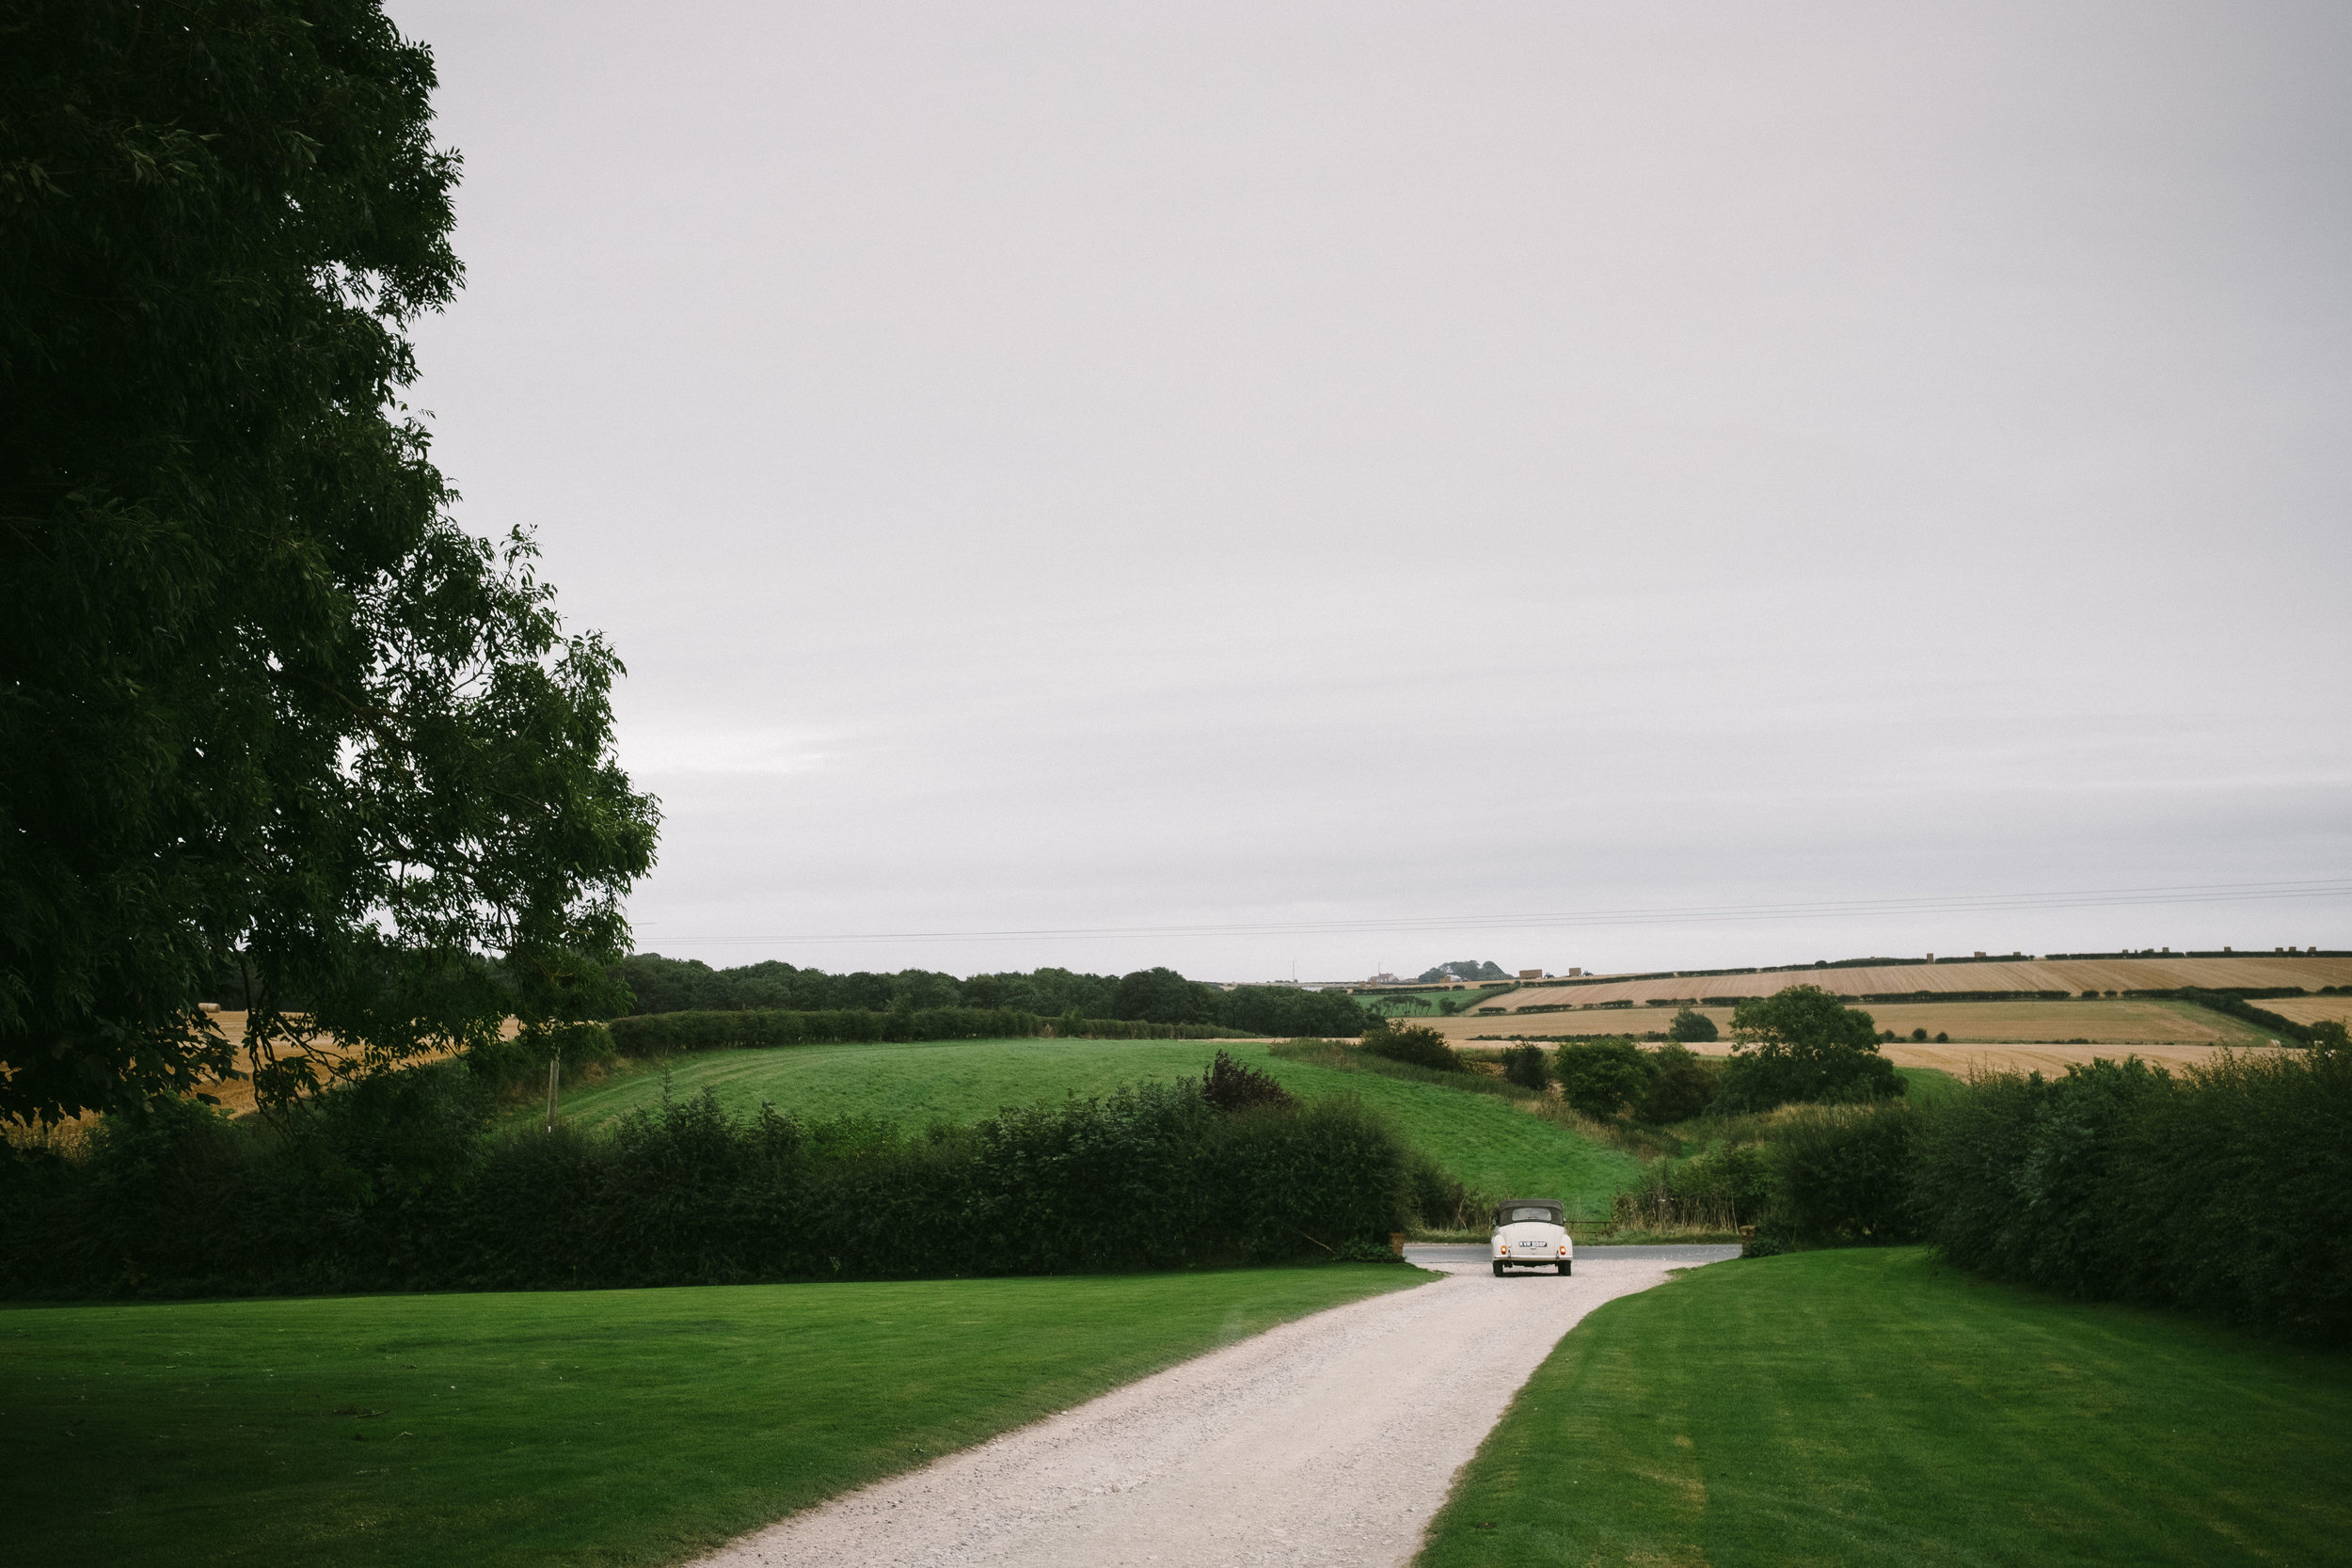 Bride drives off to church with the rolling hills of Yorkshire in background